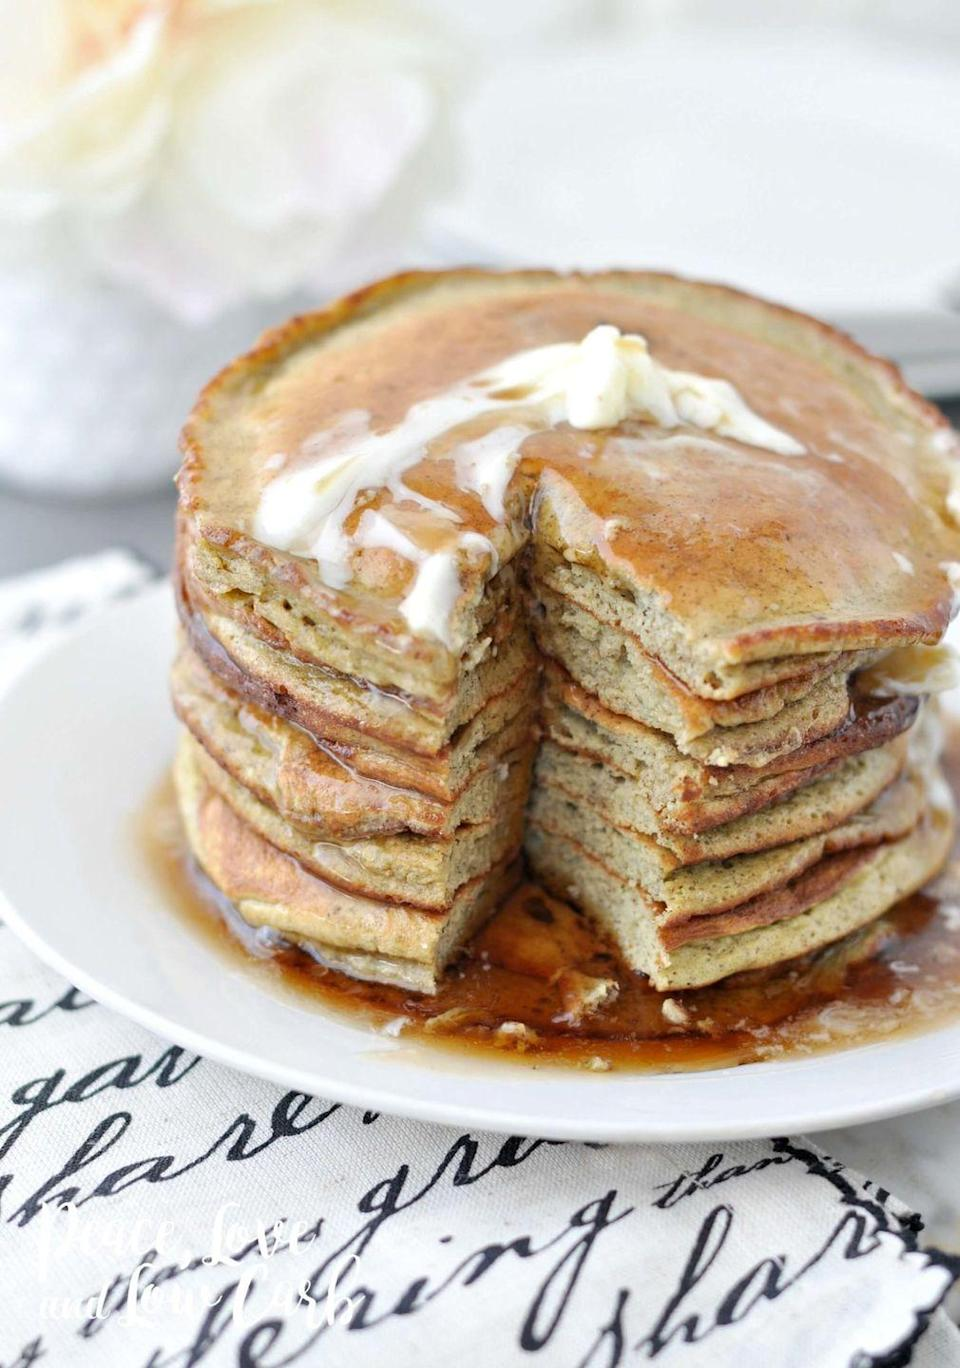 """<p>This low-carb, high-flavor stack is brunch- and Monday-worthy.</p><p><a class=""""link rapid-noclick-resp"""" href=""""https://peaceloveandlowcarb.com/low-carb-keto-banana-nut-protein-pancakes/"""" rel=""""nofollow noopener"""" target=""""_blank"""" data-ylk=""""slk:GET THE RECIPE"""">GET THE RECIPE</a> </p><p><em>Per serving: 85 calories, 5.4 g fat, 1.8 g carbs, 1 g fiber, 7.4 g protein</em><br></p>"""